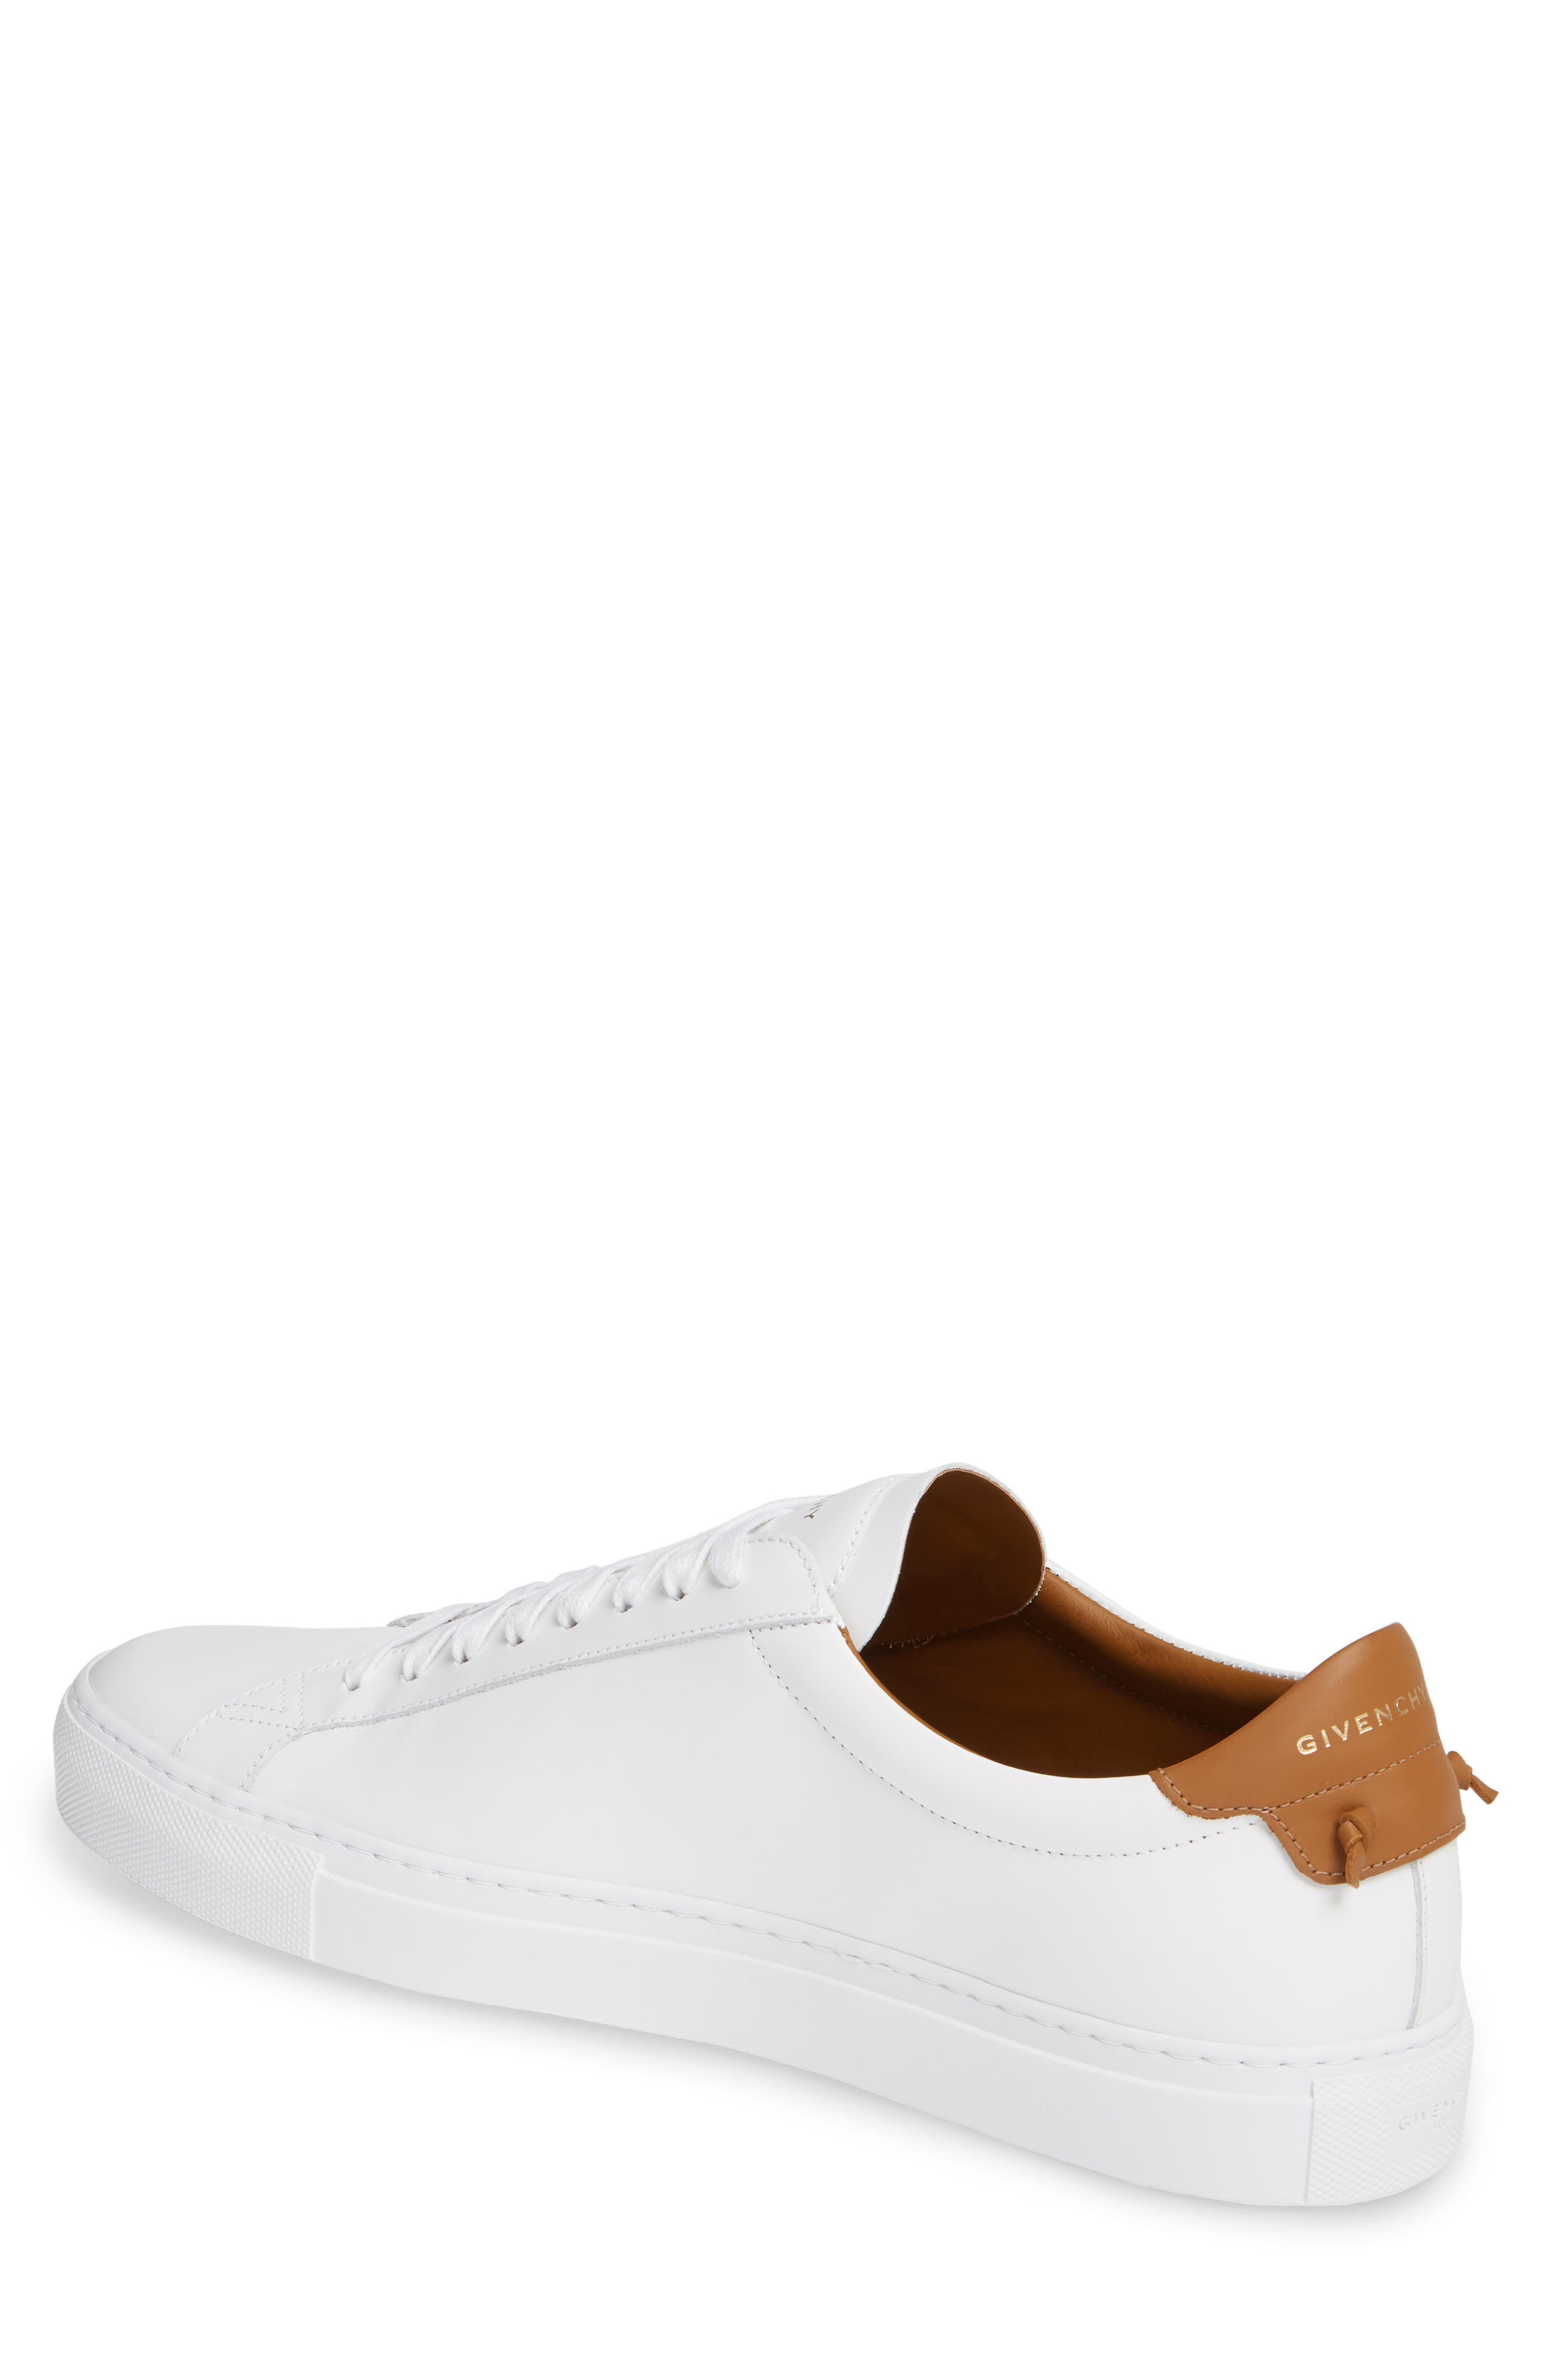 GIVENCHY,                             Urban Knots Low Sneaker,                             Alternate thumbnail 2, color,                             WHITE/ BEIGE